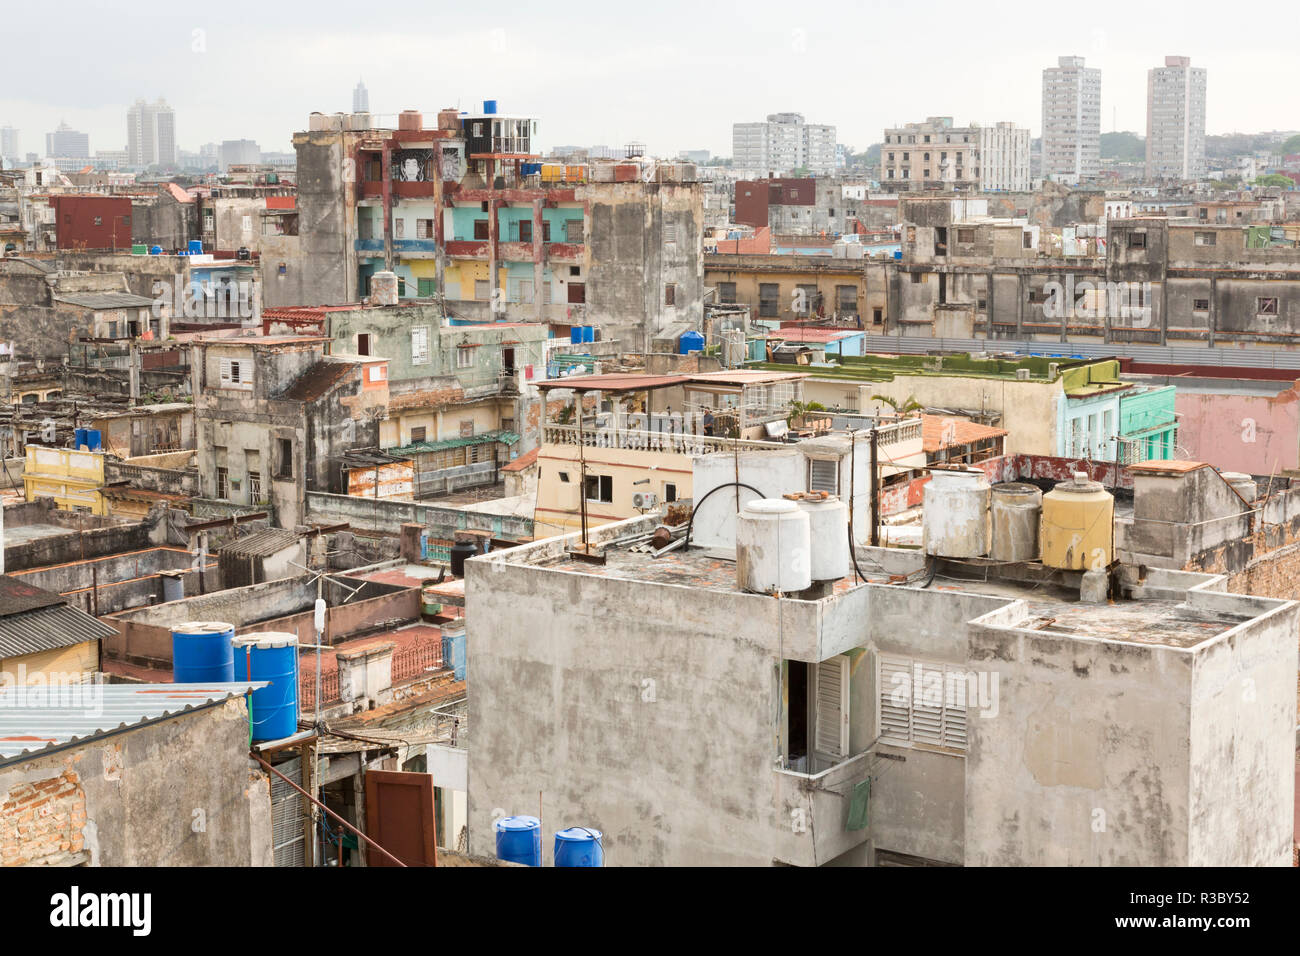 Cuba, Havana. Overview of buildings and rooftops. Credit as: Wendy Kaveney / Jaynes Gallery / DanitaDelimont.com Stock Photo